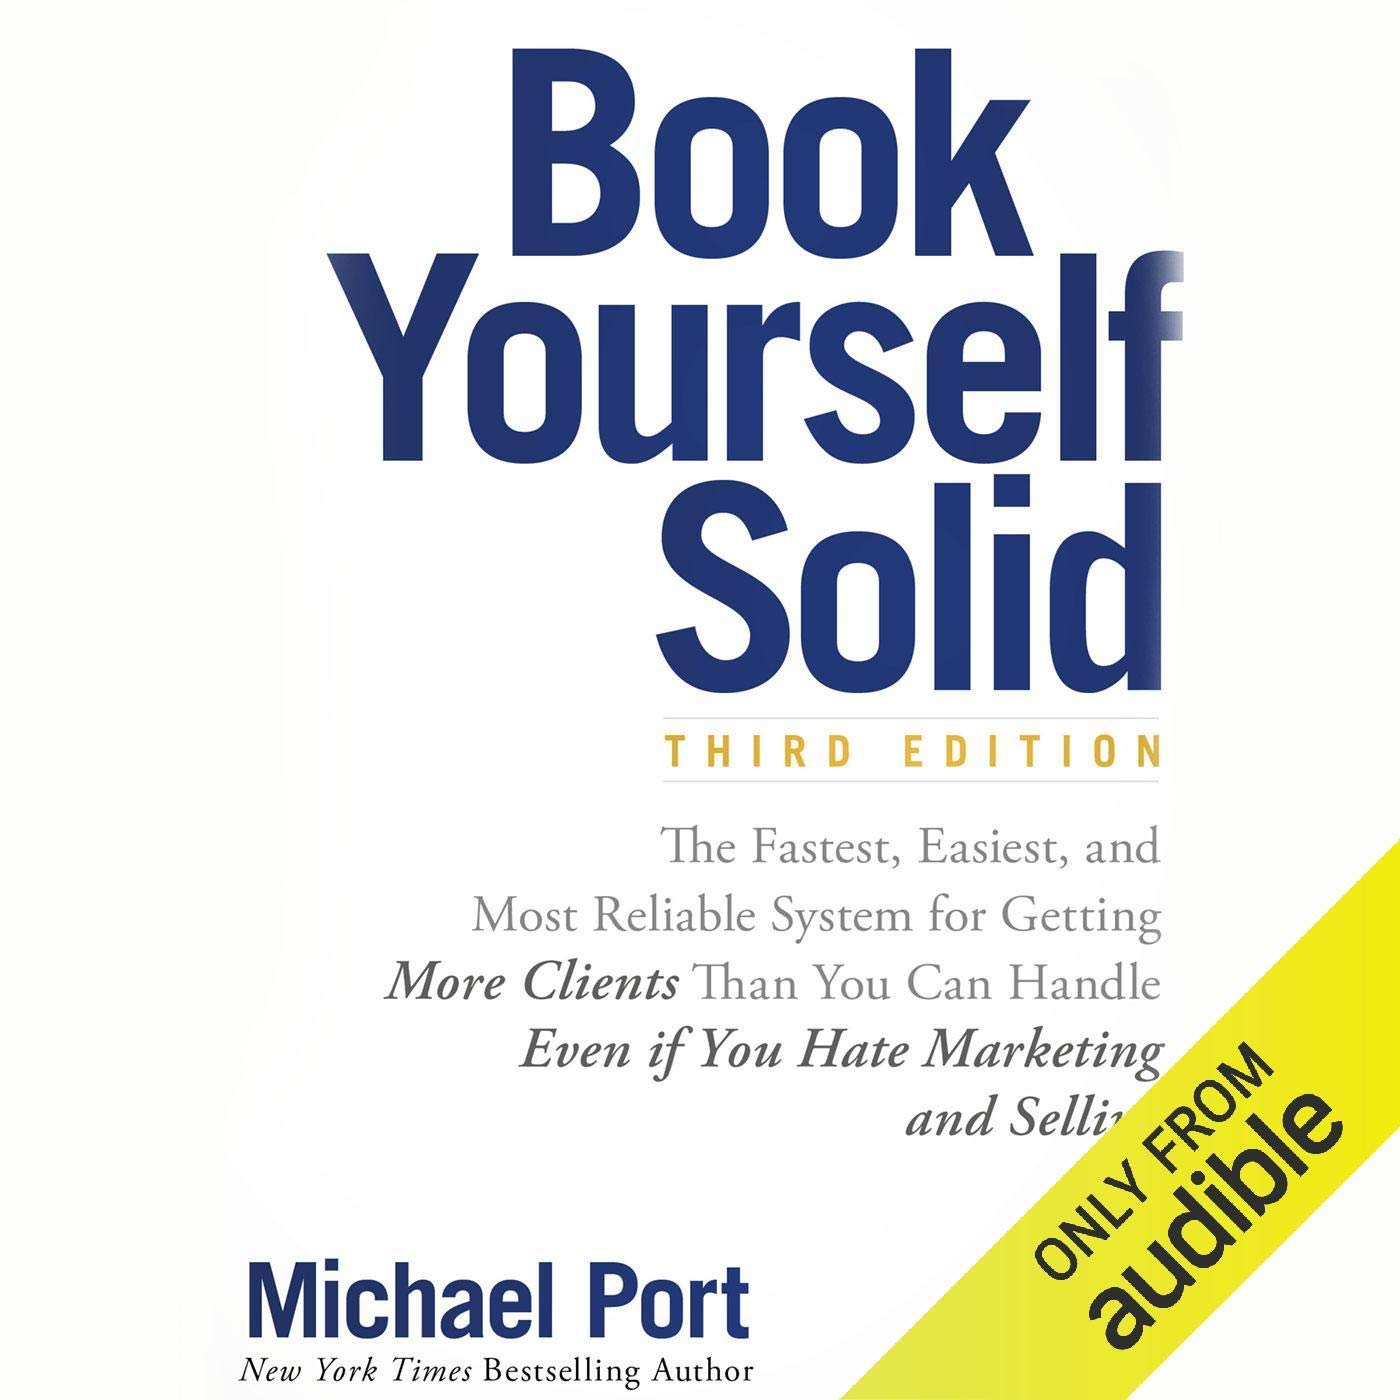 Book Yourself Solid Third Edition  The Fastest Easiest And Most Reliable System For Getting More Clients Than You Can Handle Even If You Hate Marketing And Selling